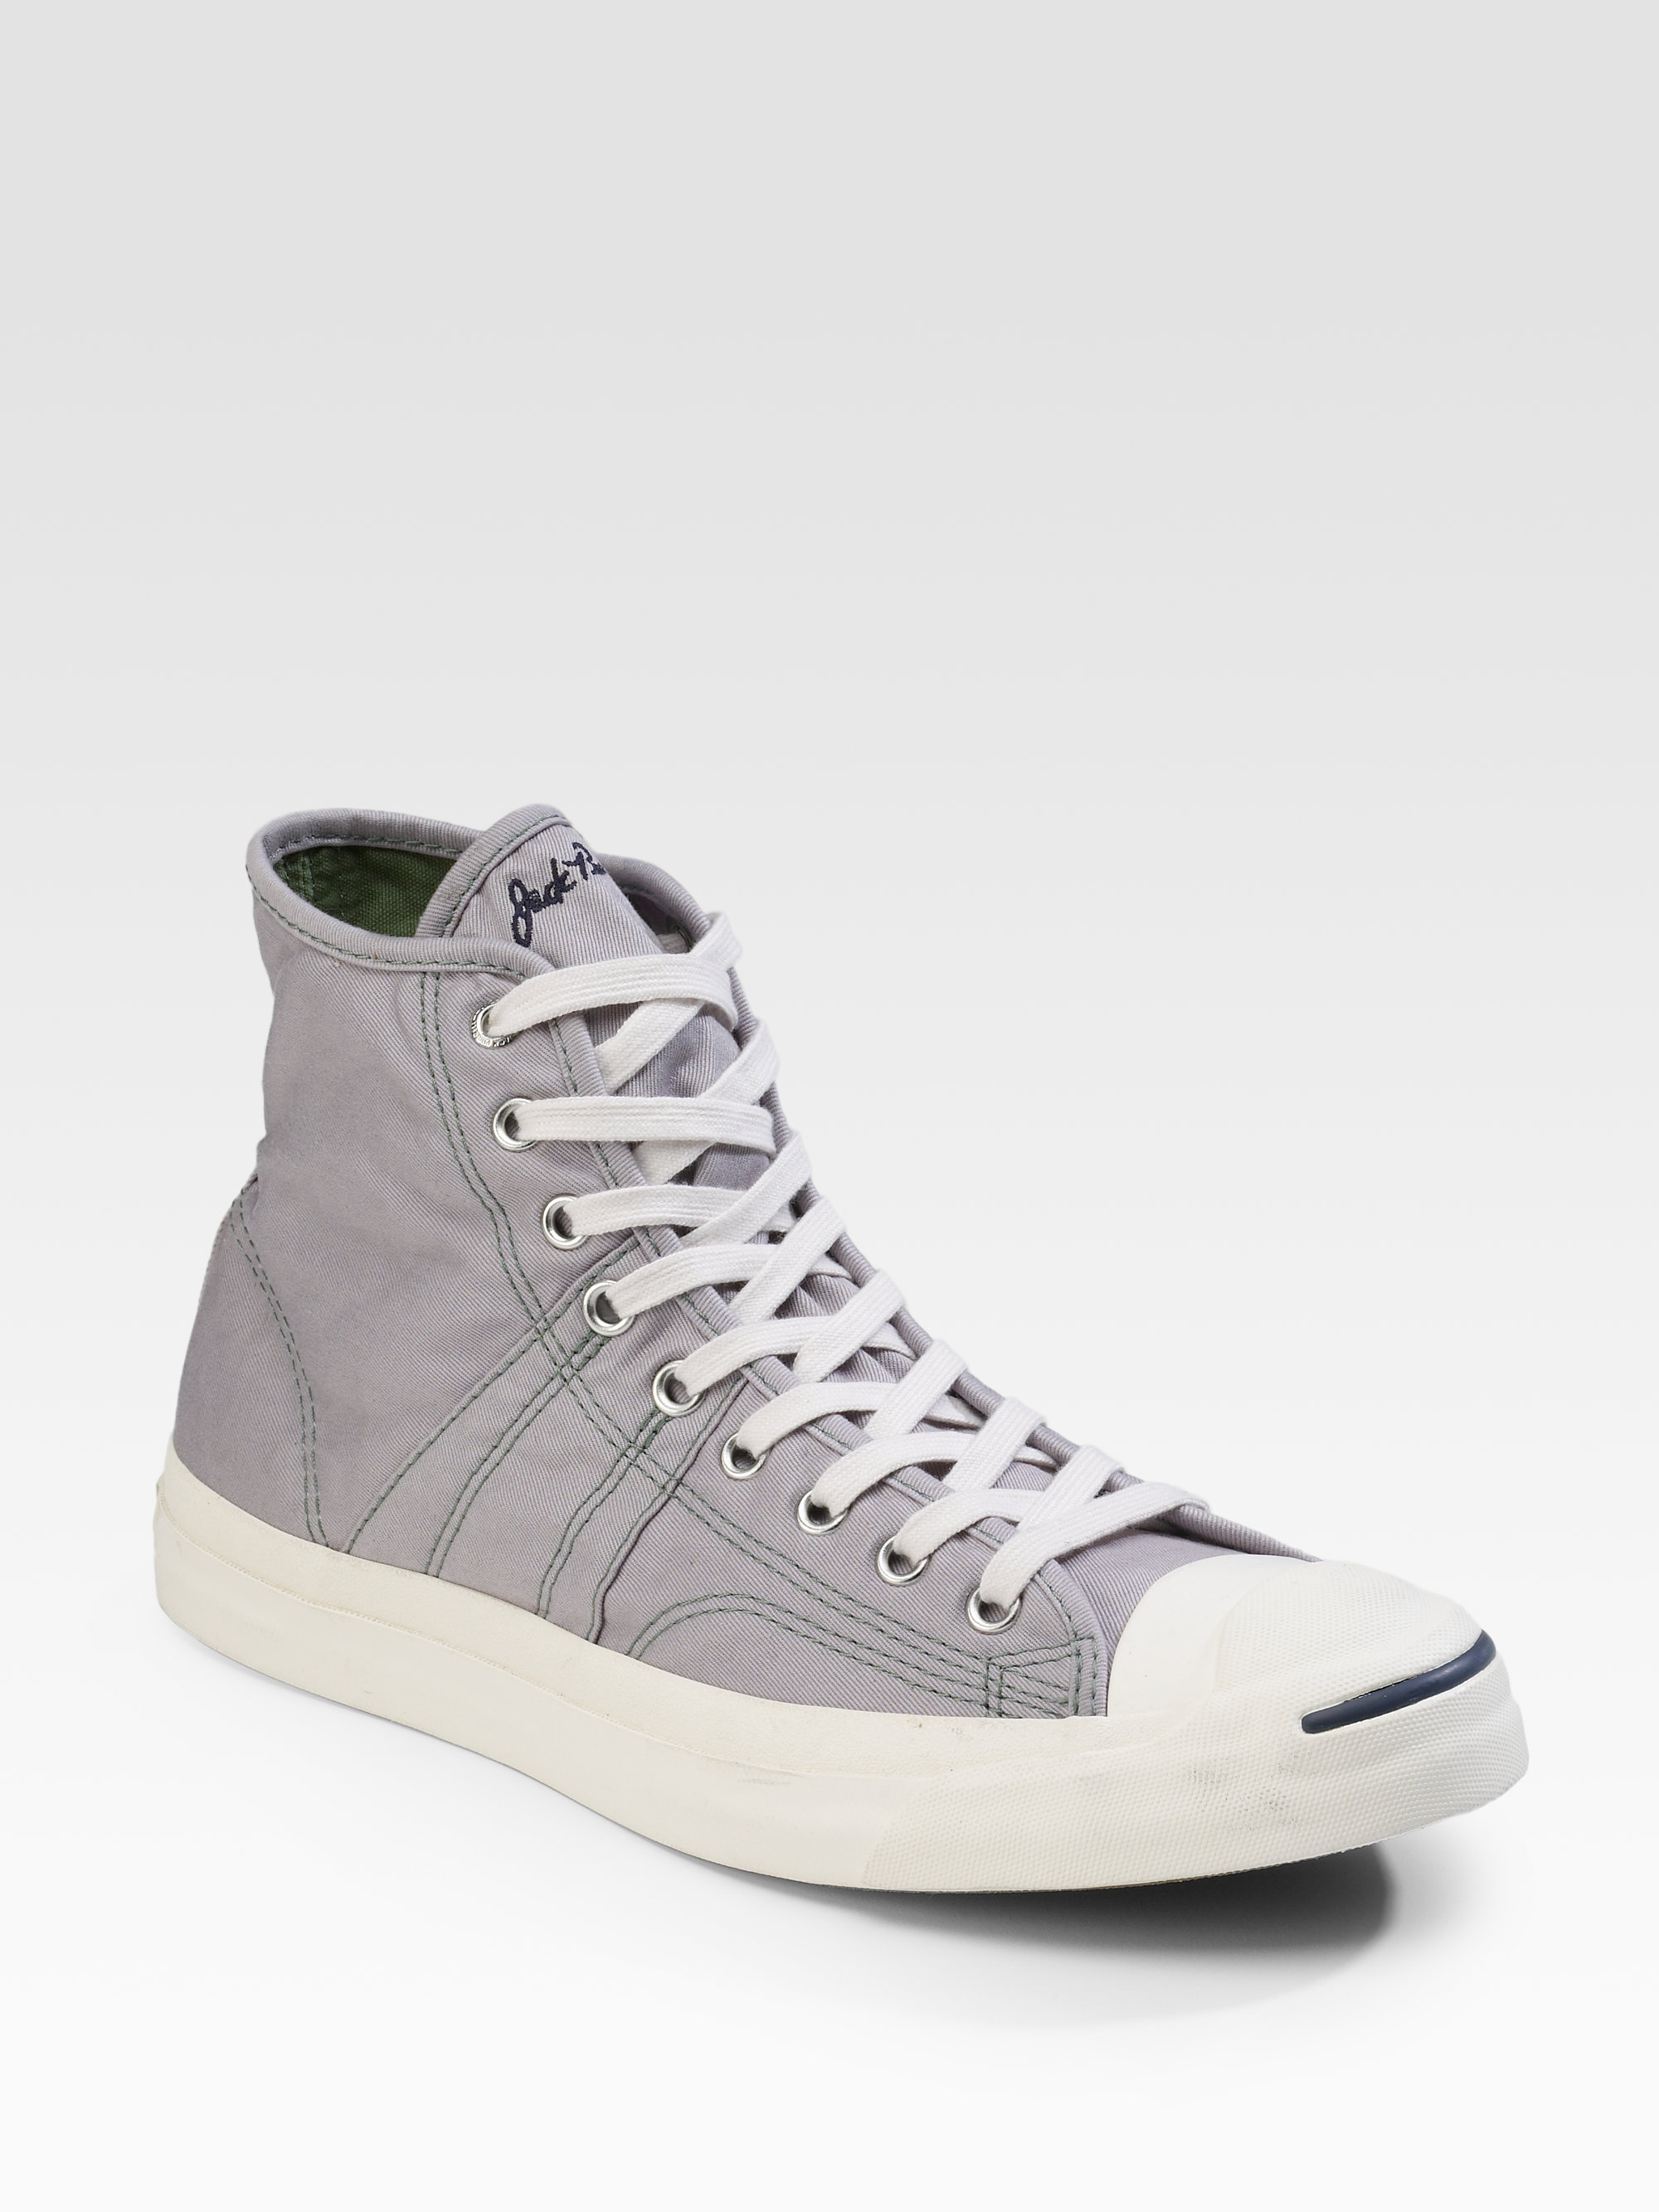 68aa388ca4f Lyst - Converse Jack Purcell Johnny High-tops in Gray for Men